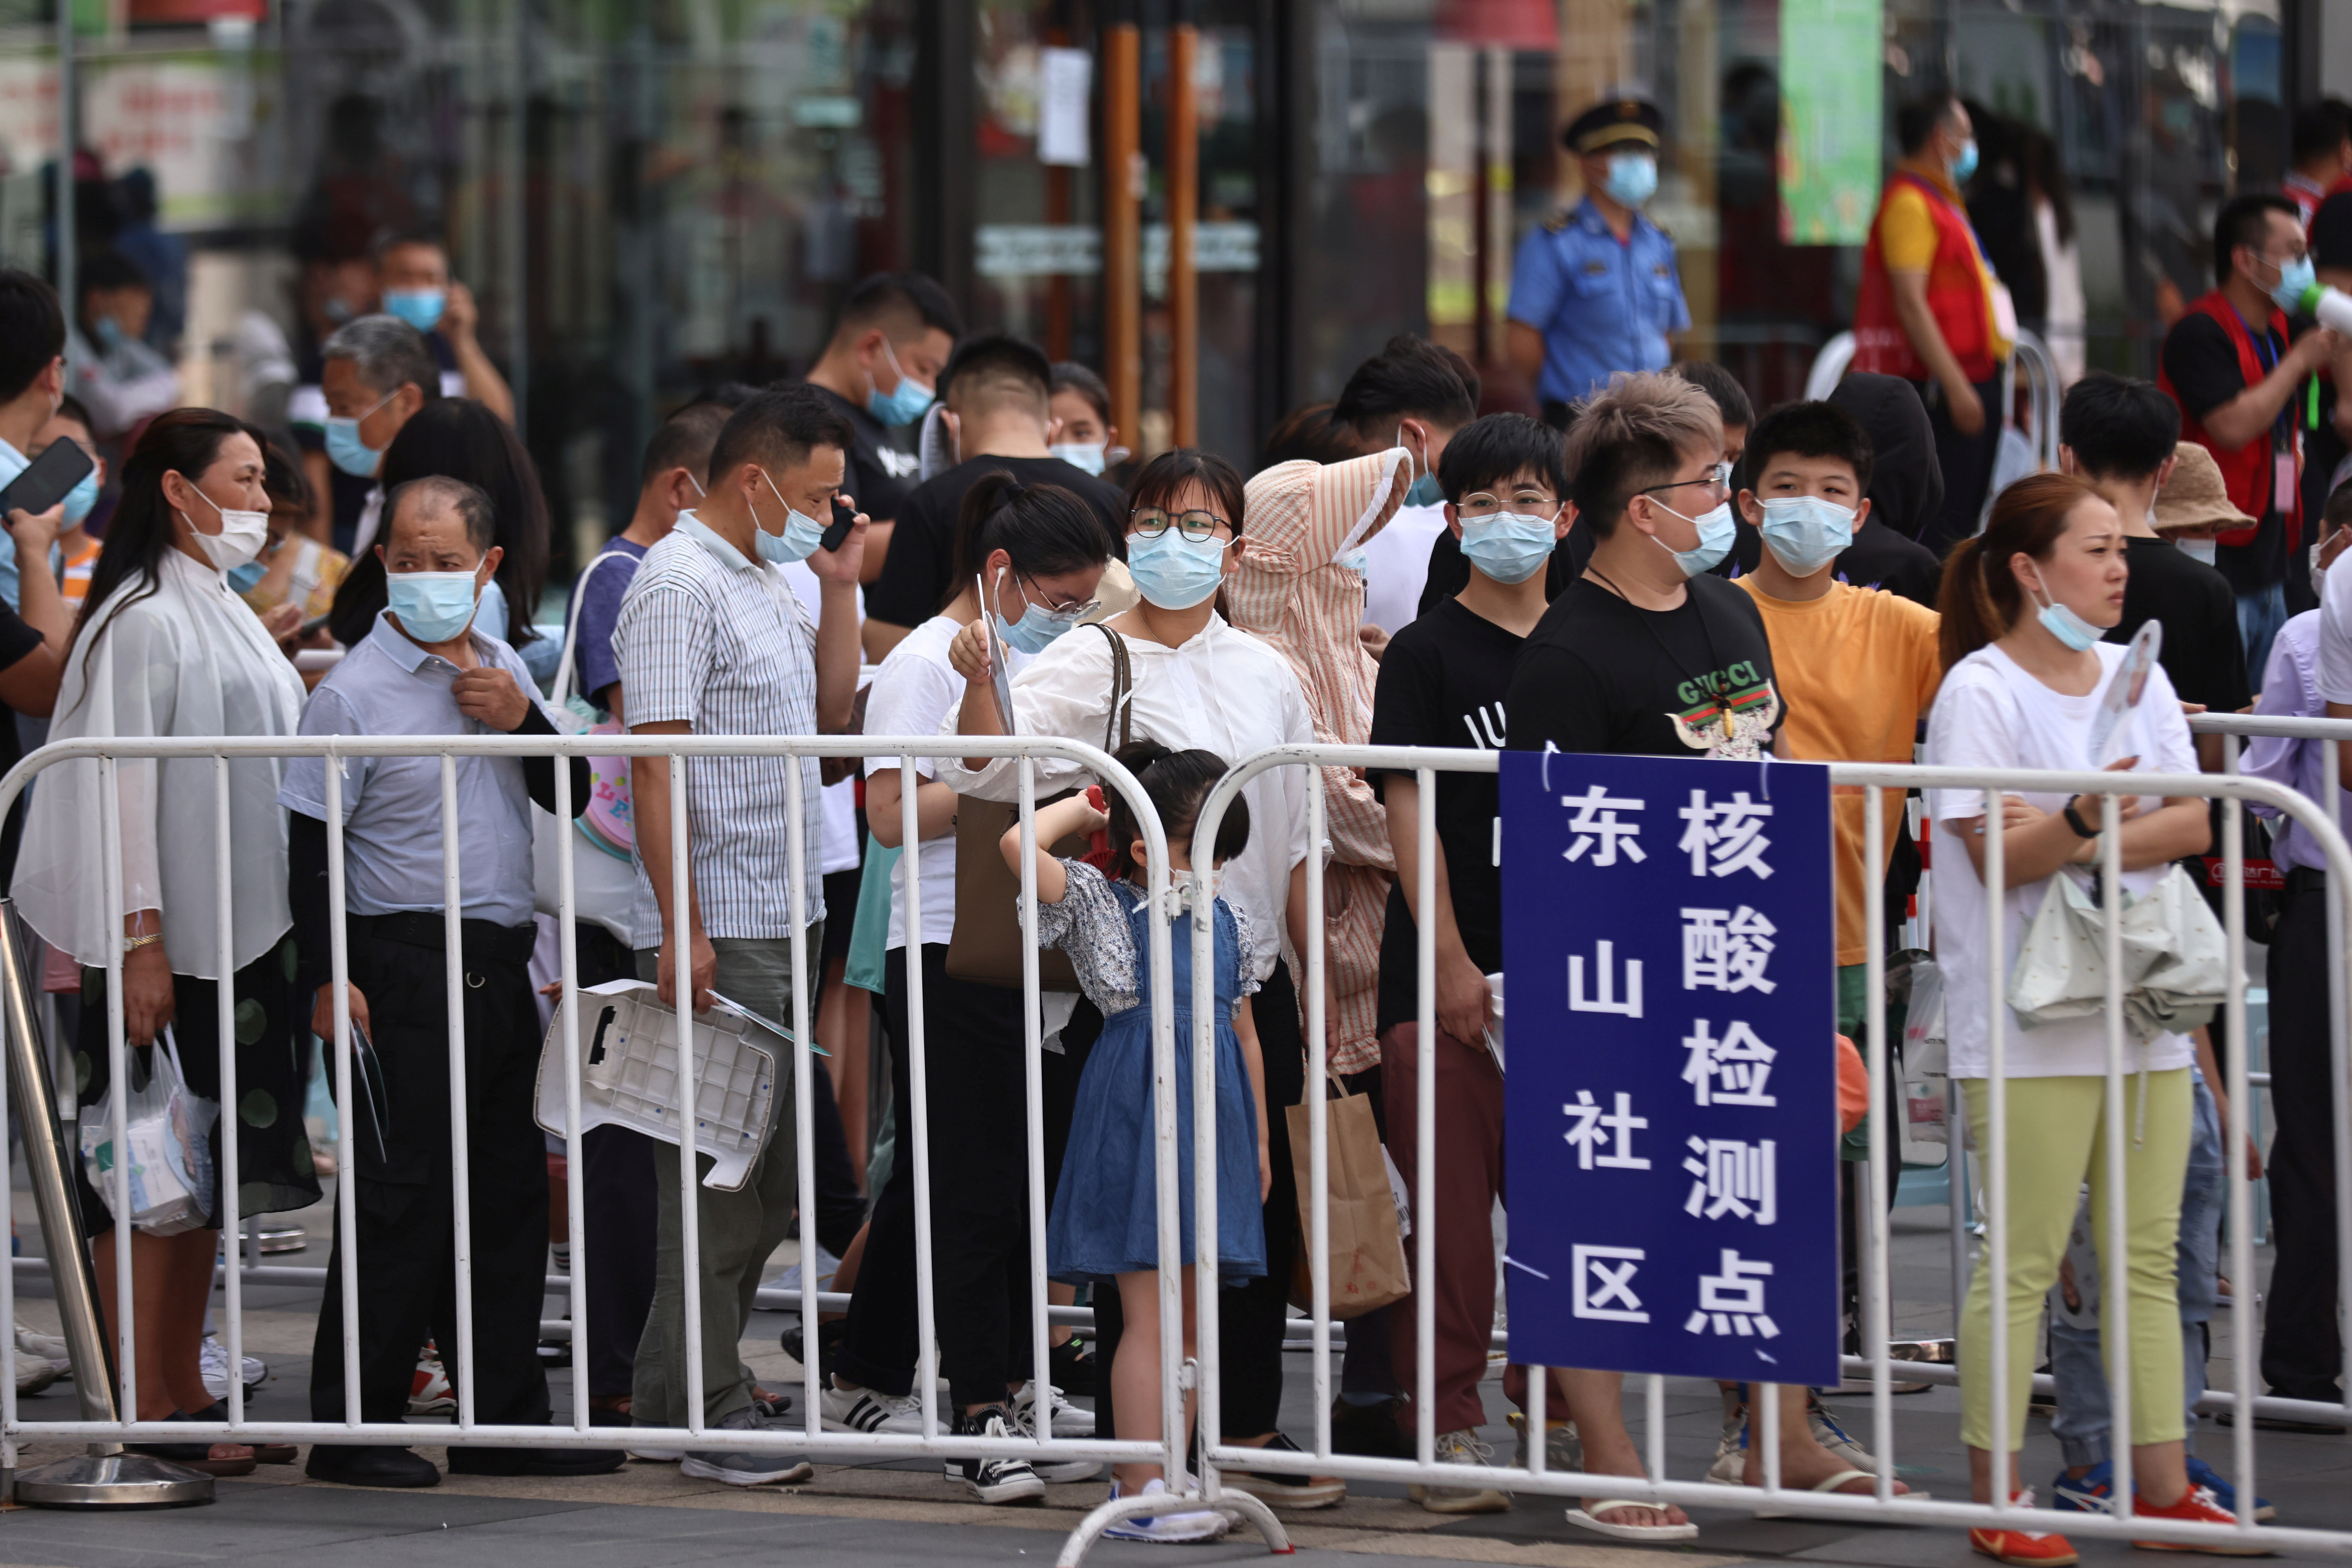 People line up at a makeshift nucleic acid testing site outside a shopping mall in Jiangning district, following new cases of the coronavirus disease (COVID-19) in Nanjing, Jiangsu province, China July 21, 2021. cnsphoto via REUTERS